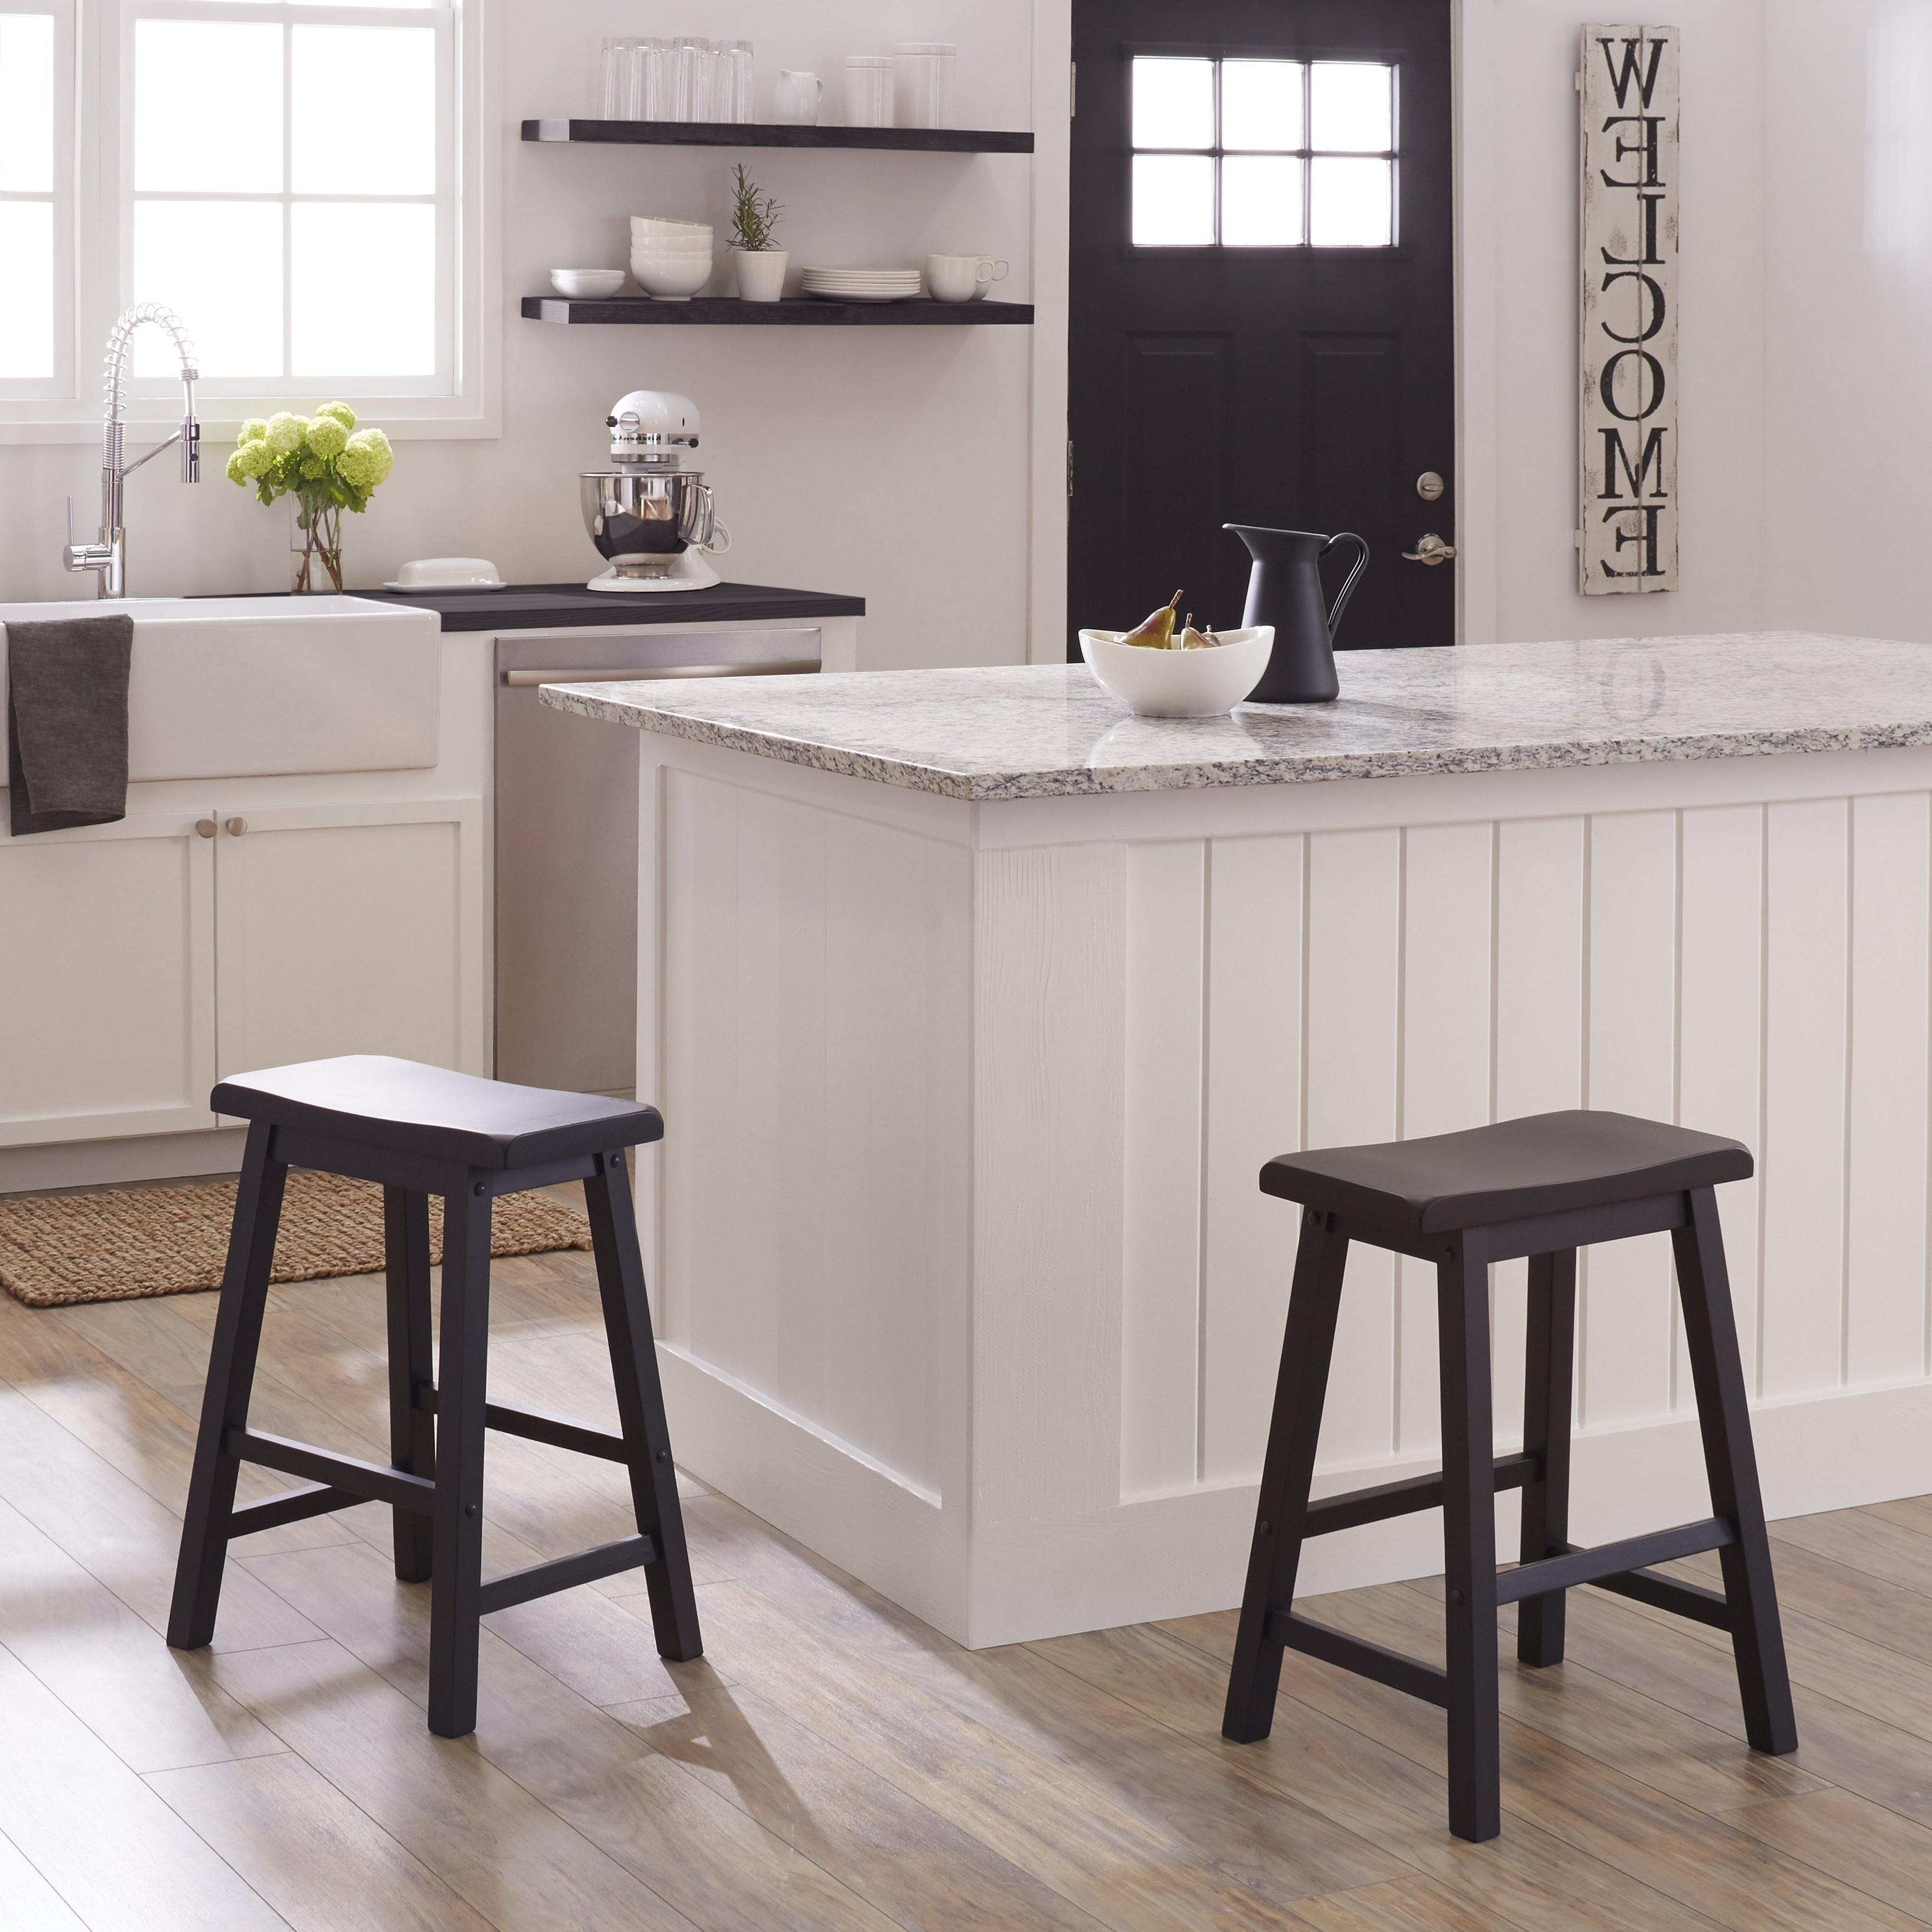 Trendy Mysliwiec 5 Piece Counter Height Breakfast Nook Dining Sets Intended For Discover More About Small Counter Height Table Please Click Here For (View 20 of 25)